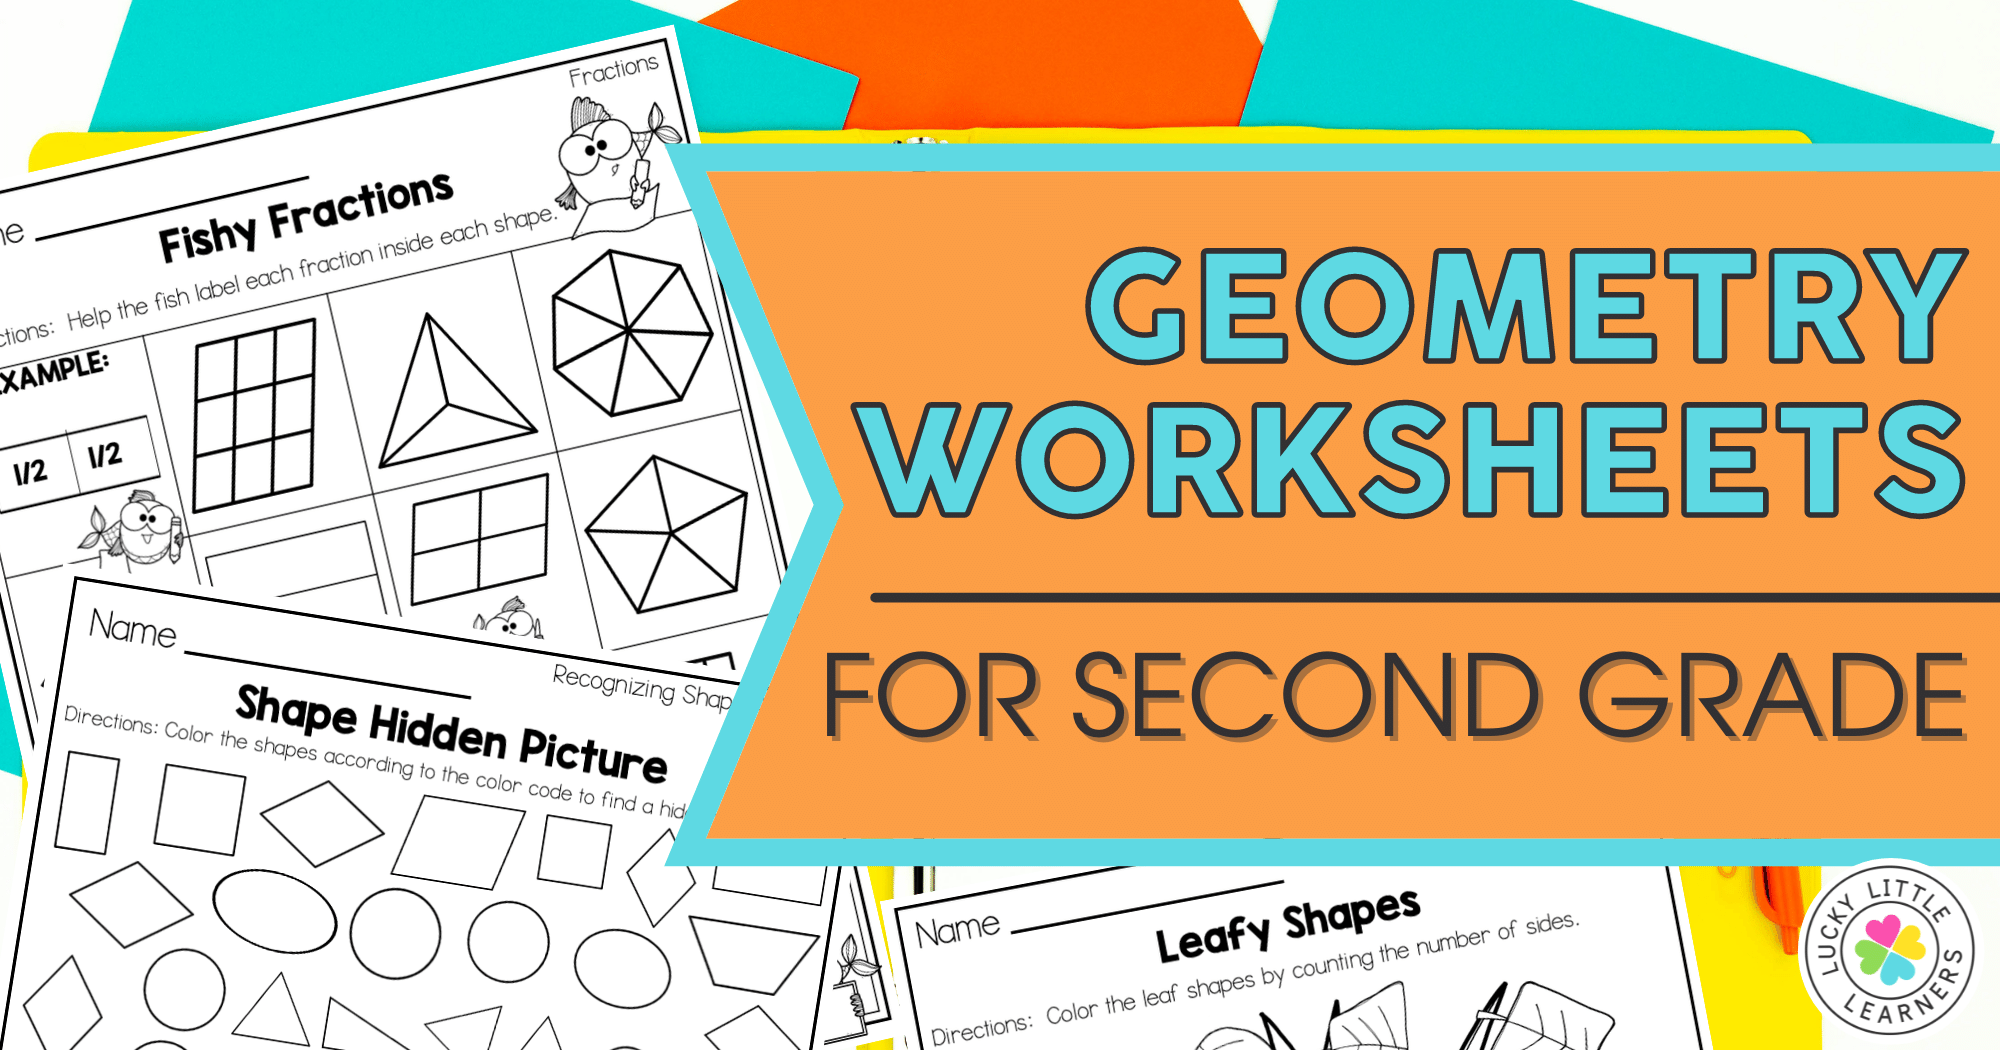 Geometry Worksheets for 2nd Grade